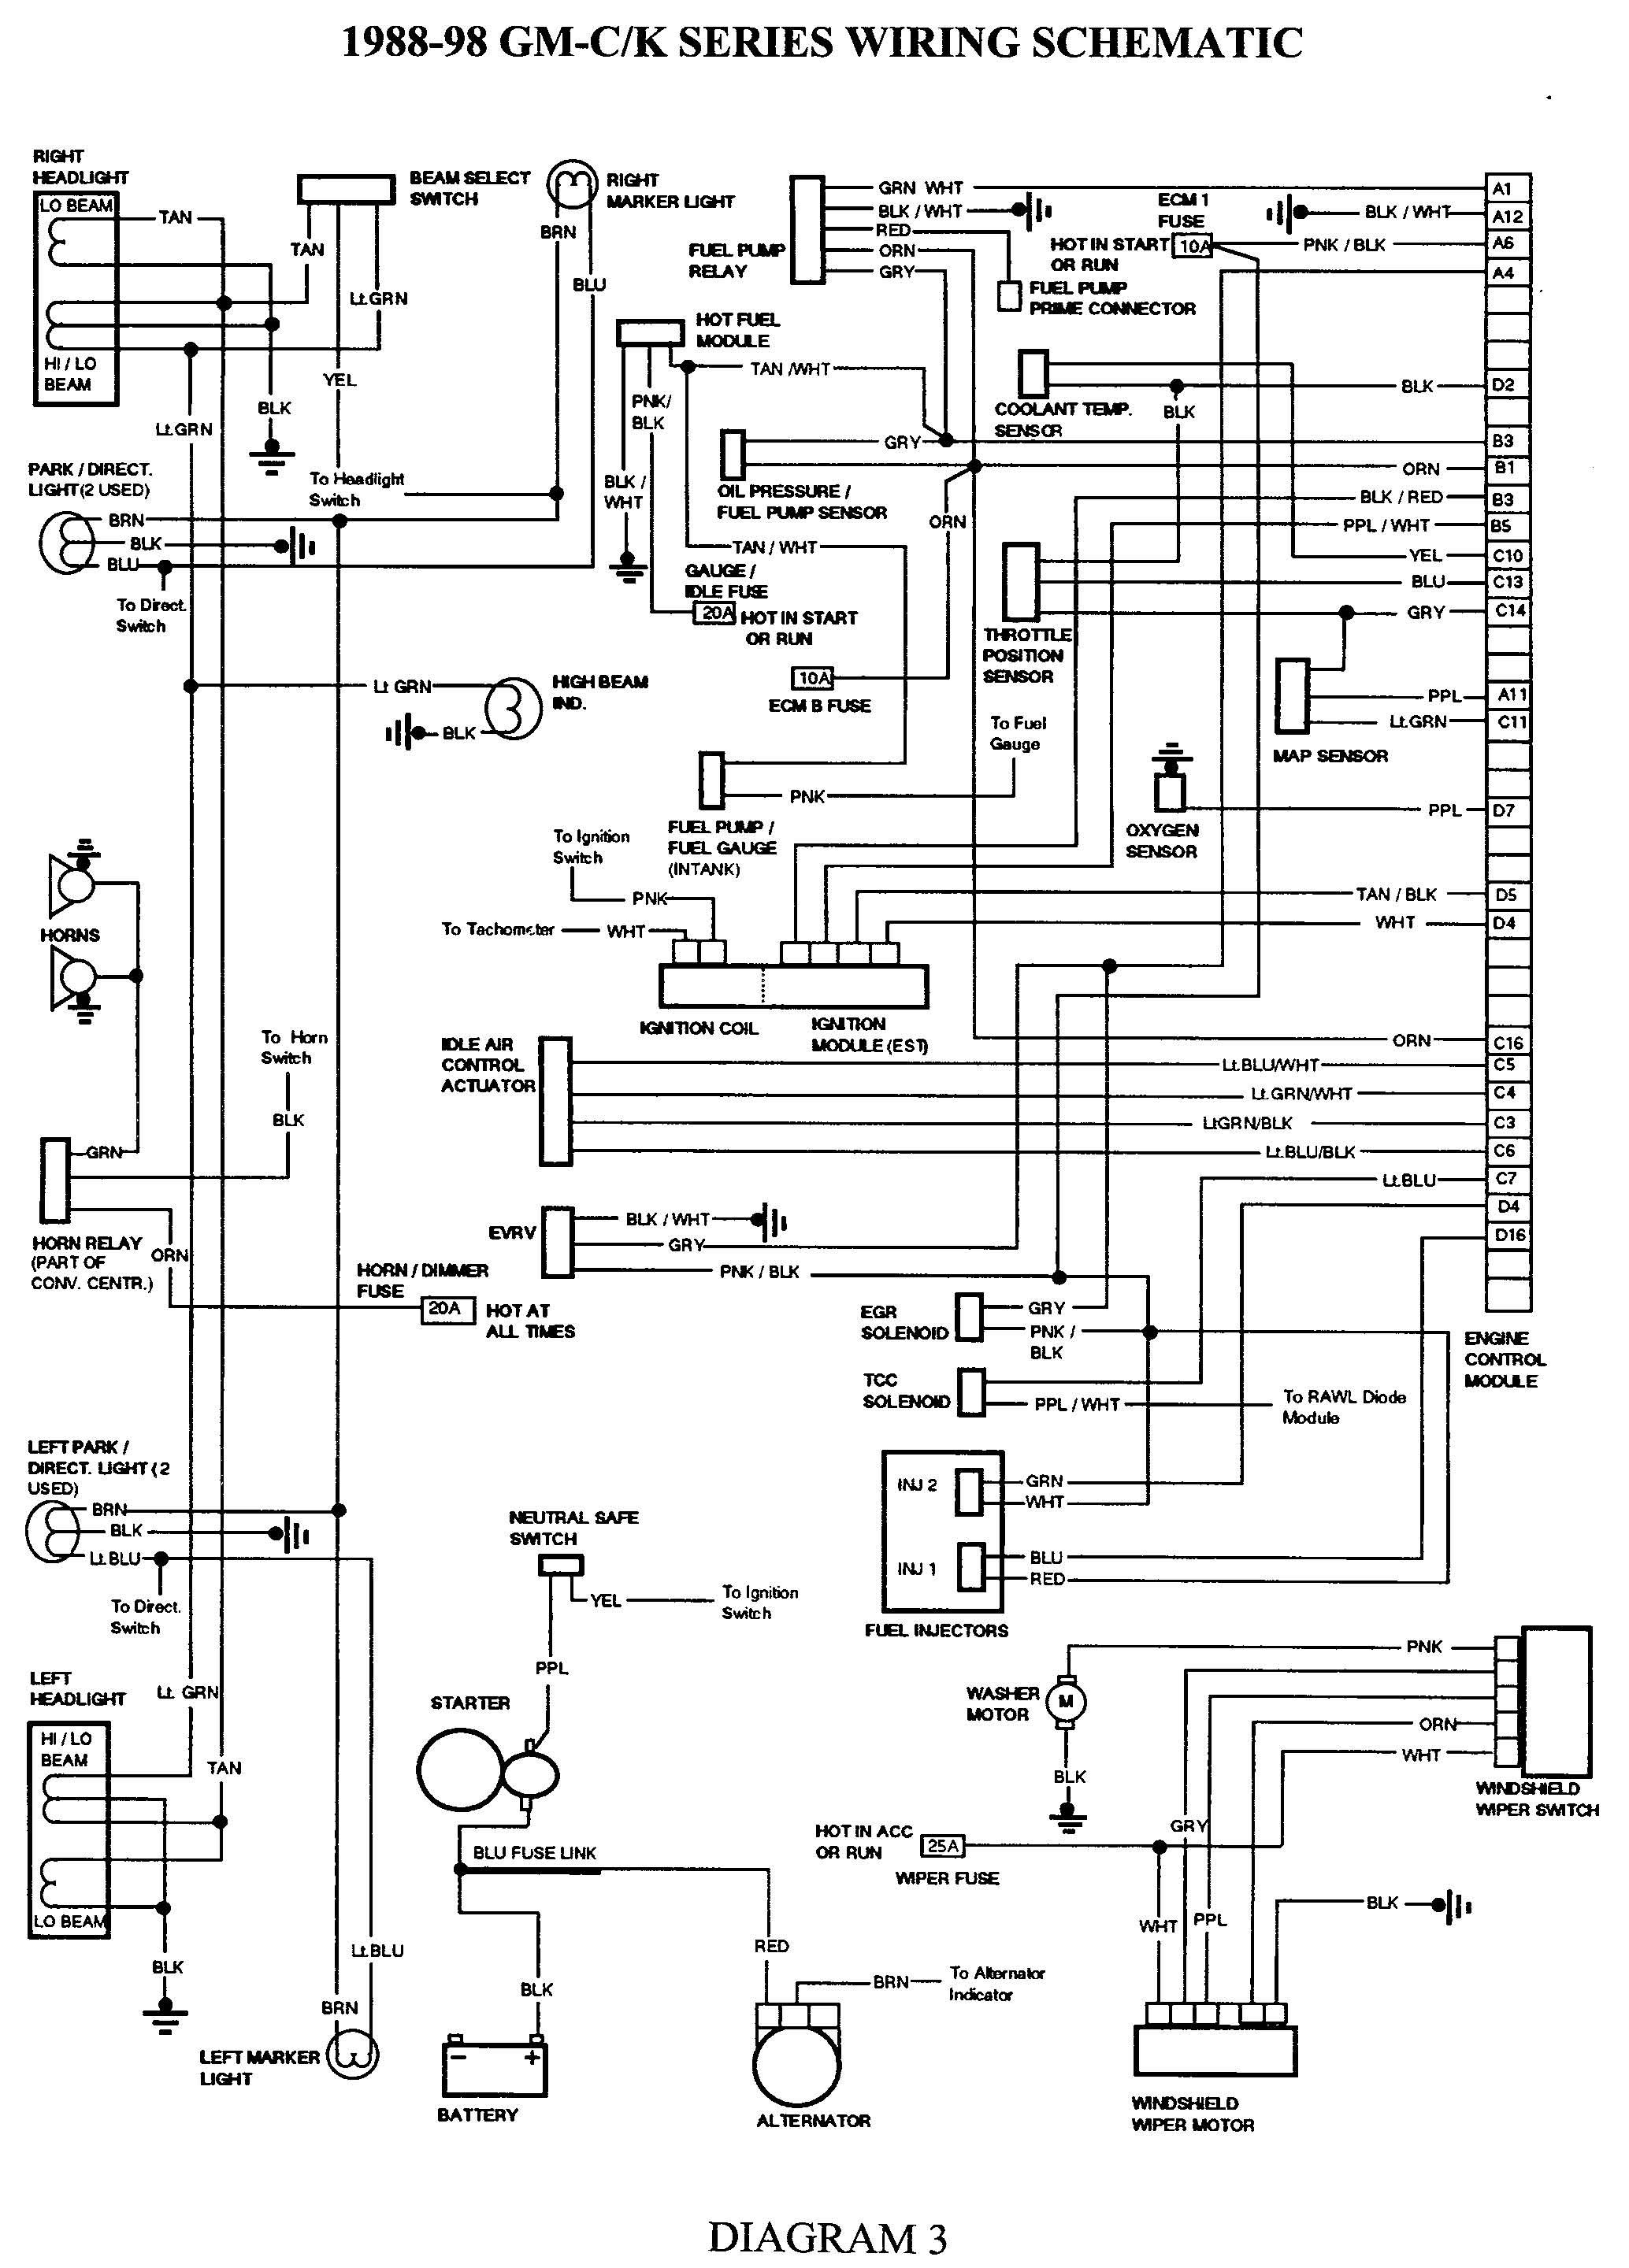 1987 chevy 350 engine diagram wiring diagram1987 chevy 350 engine diagram